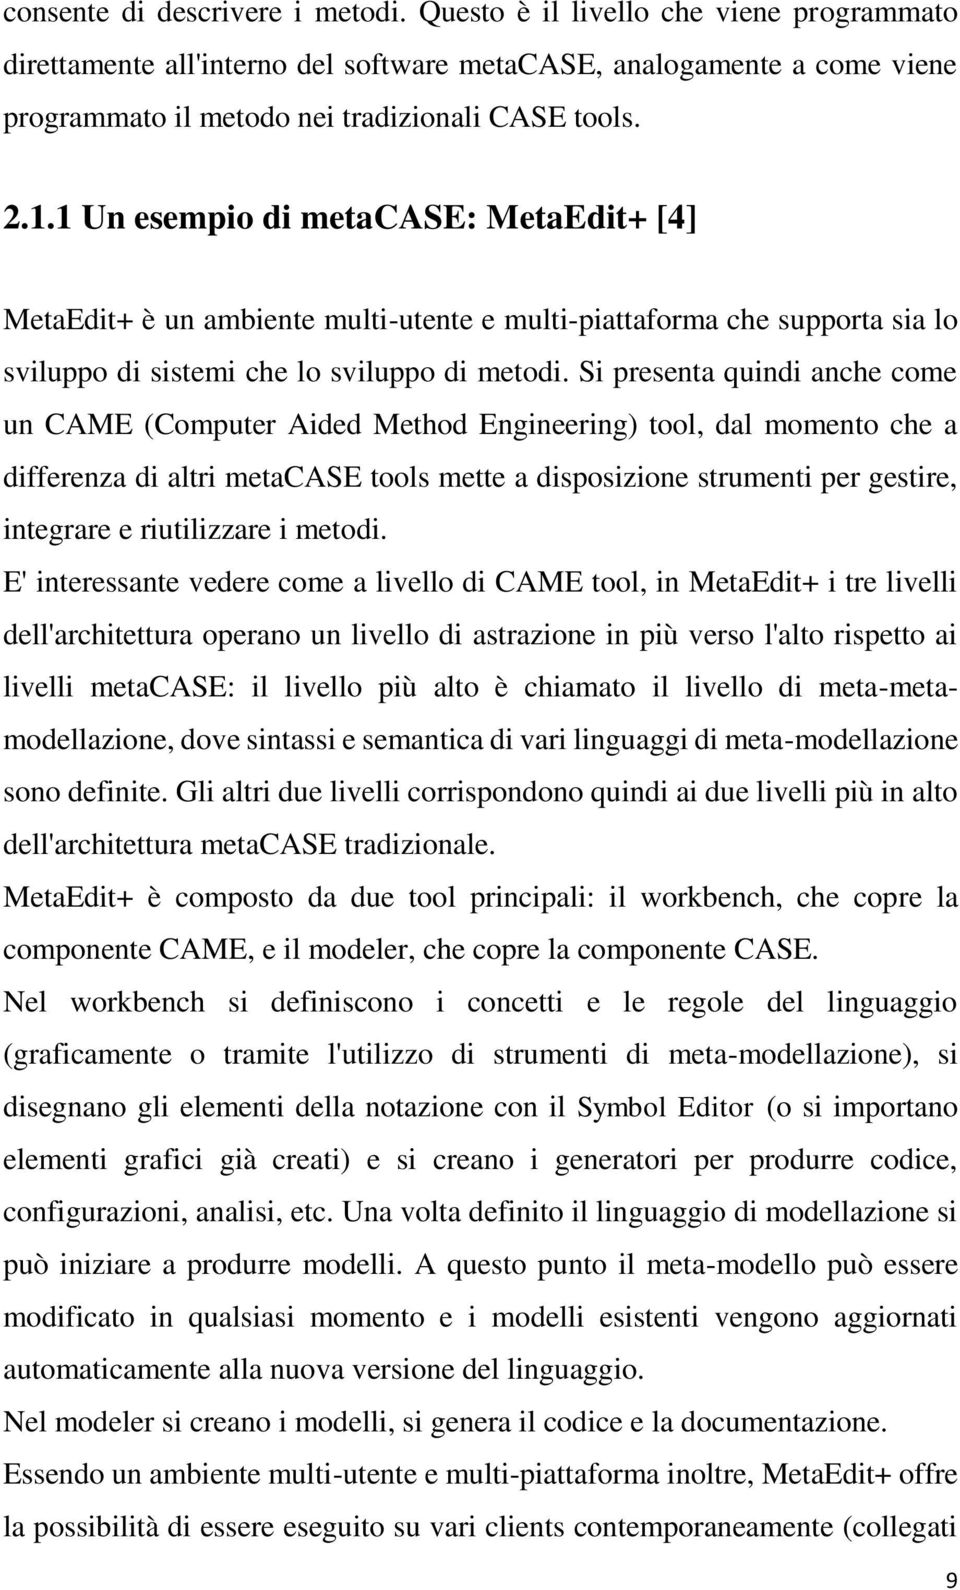 Si presenta quindi anche come un CAME (Computer Aided Method Engineering) tool, dal momento che a differenza di altri metacase tools mette a disposizione strumenti per gestire, integrare e